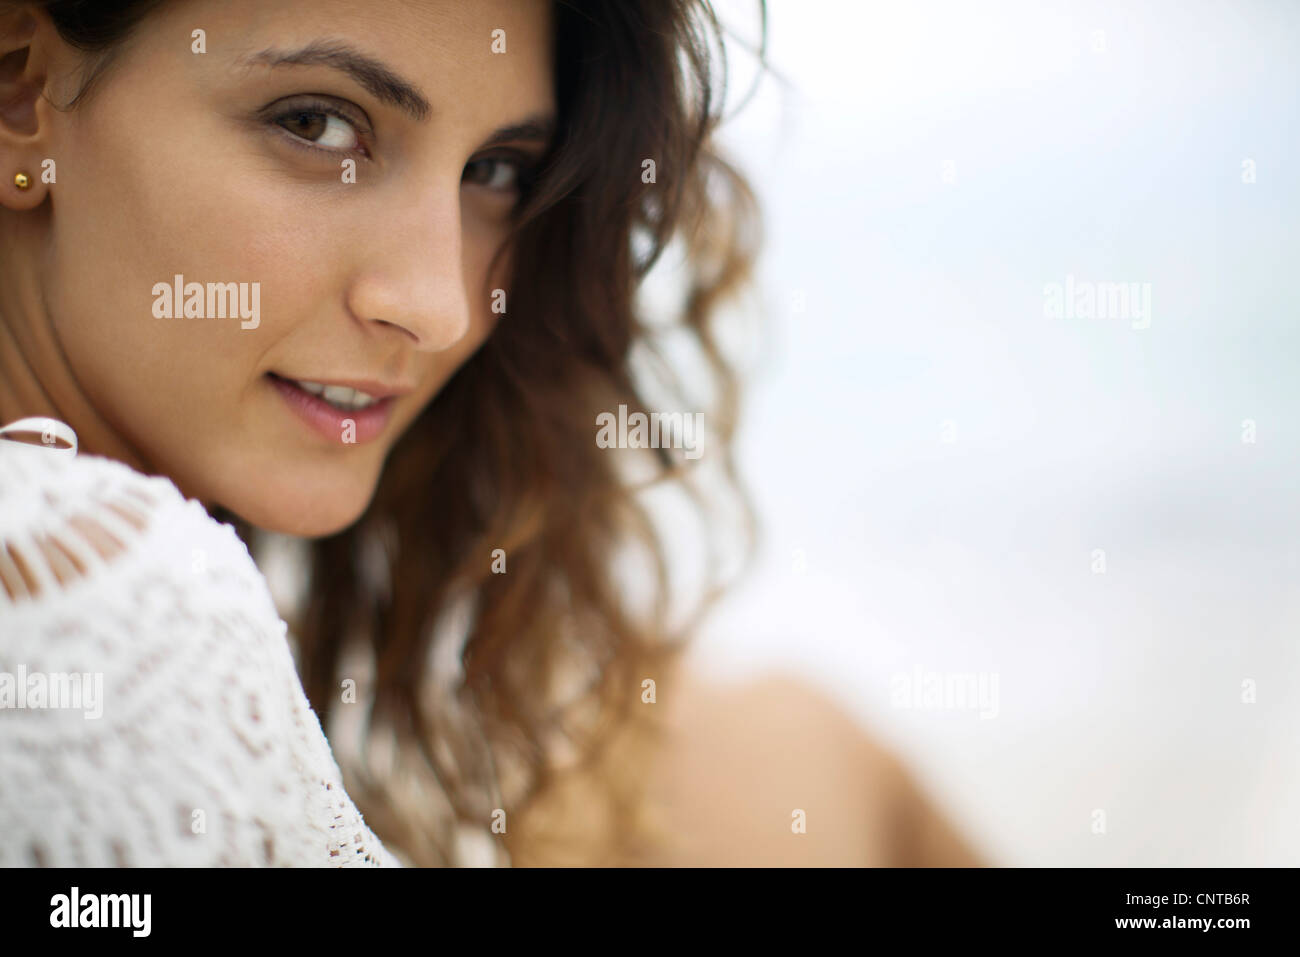 Young woman looking over shoulder, cropped - Stock Image